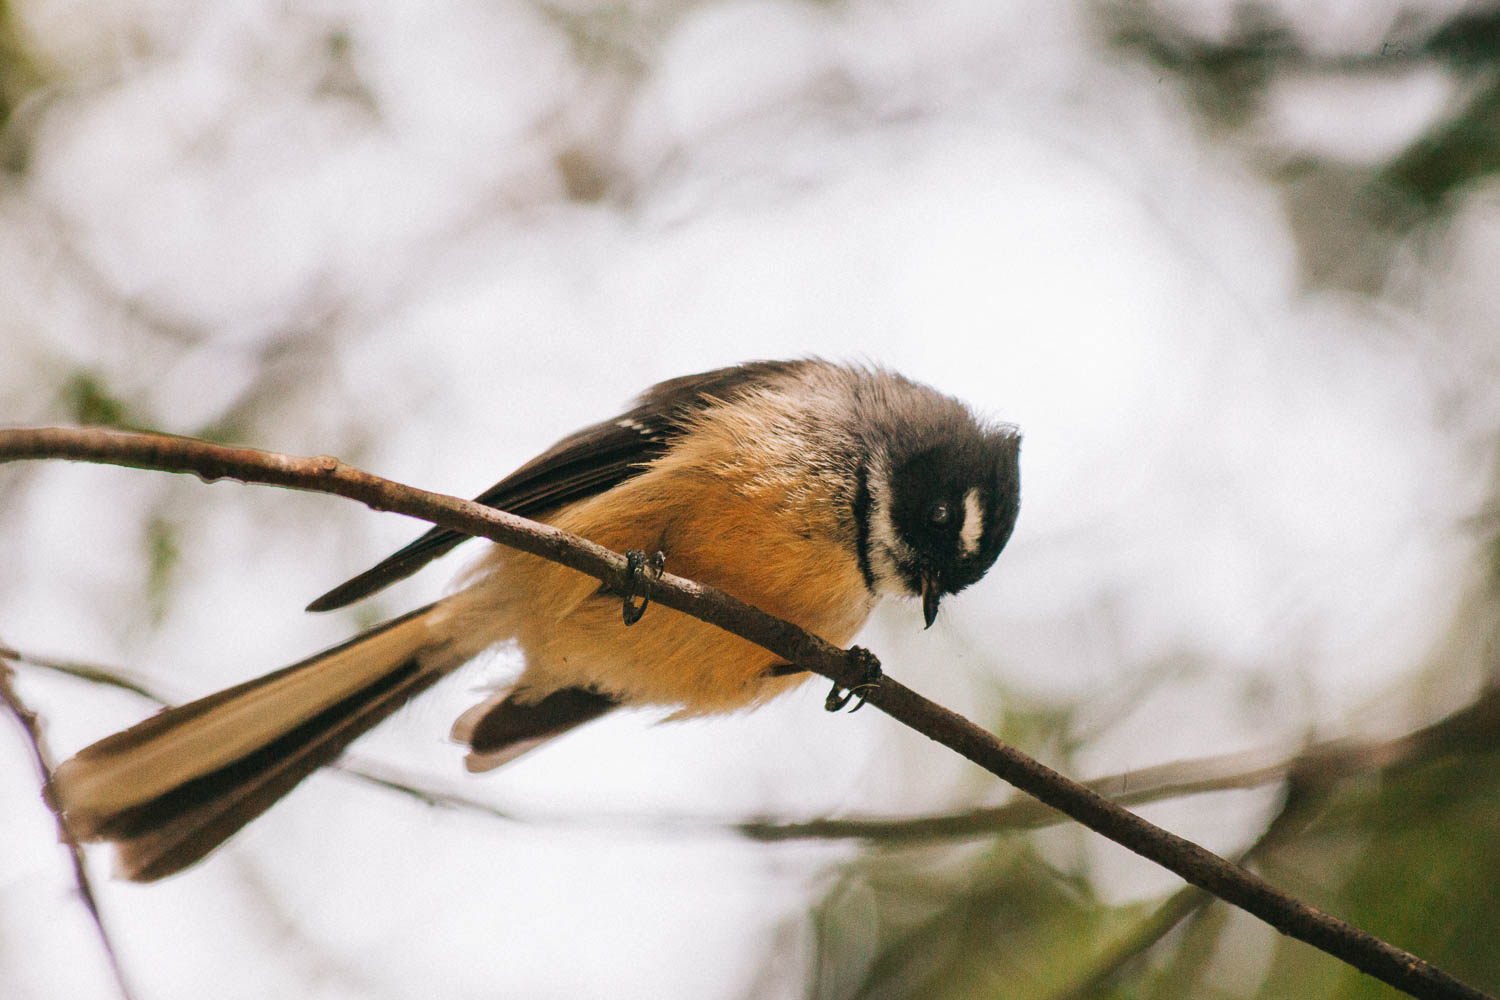 NZ fantail by Leonie Wise